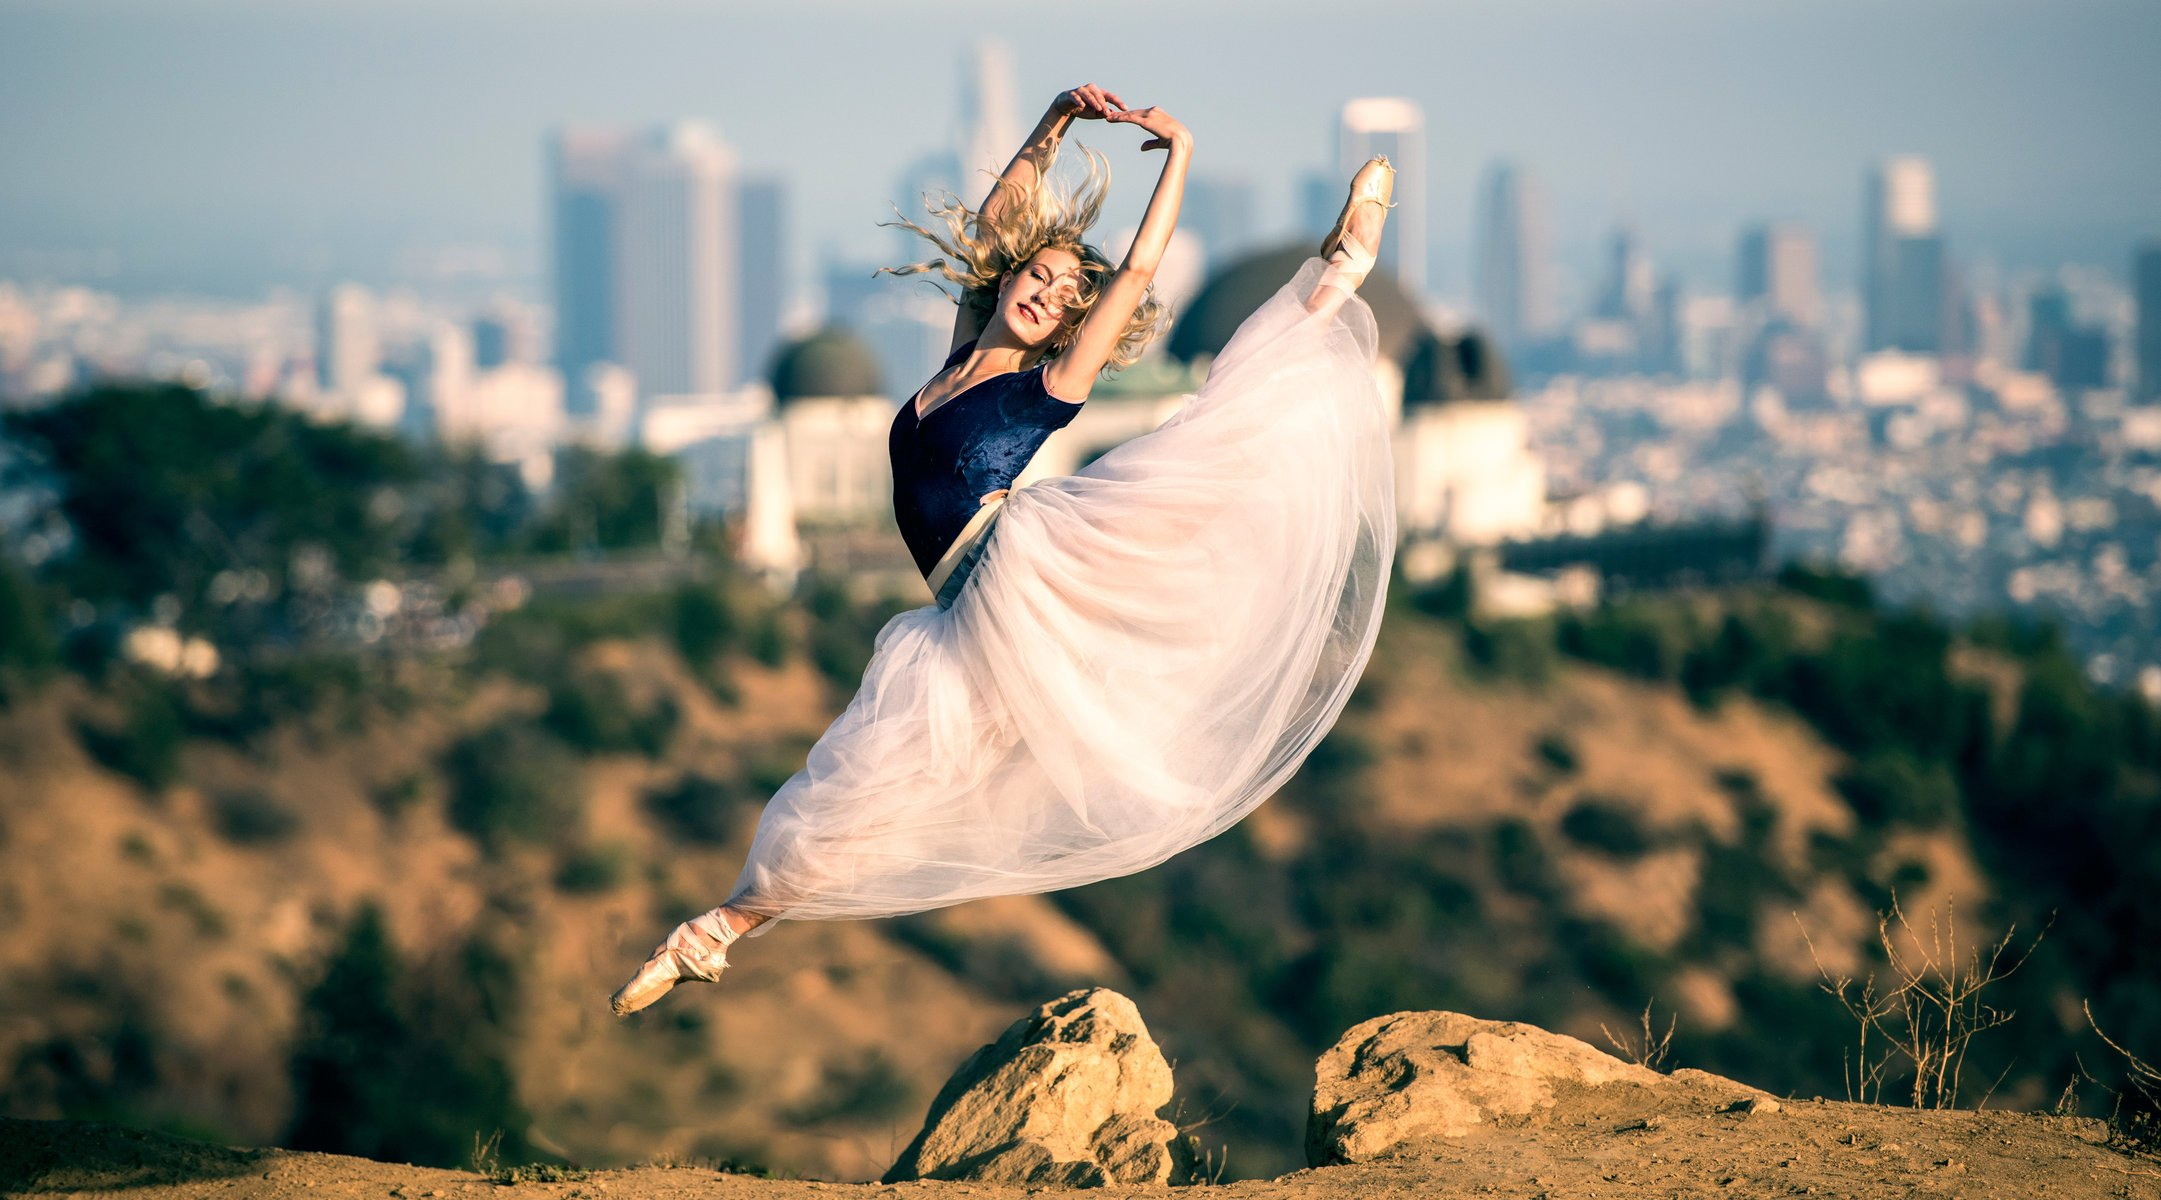 beautiful ballet ballerina pointes dress jump in the background town